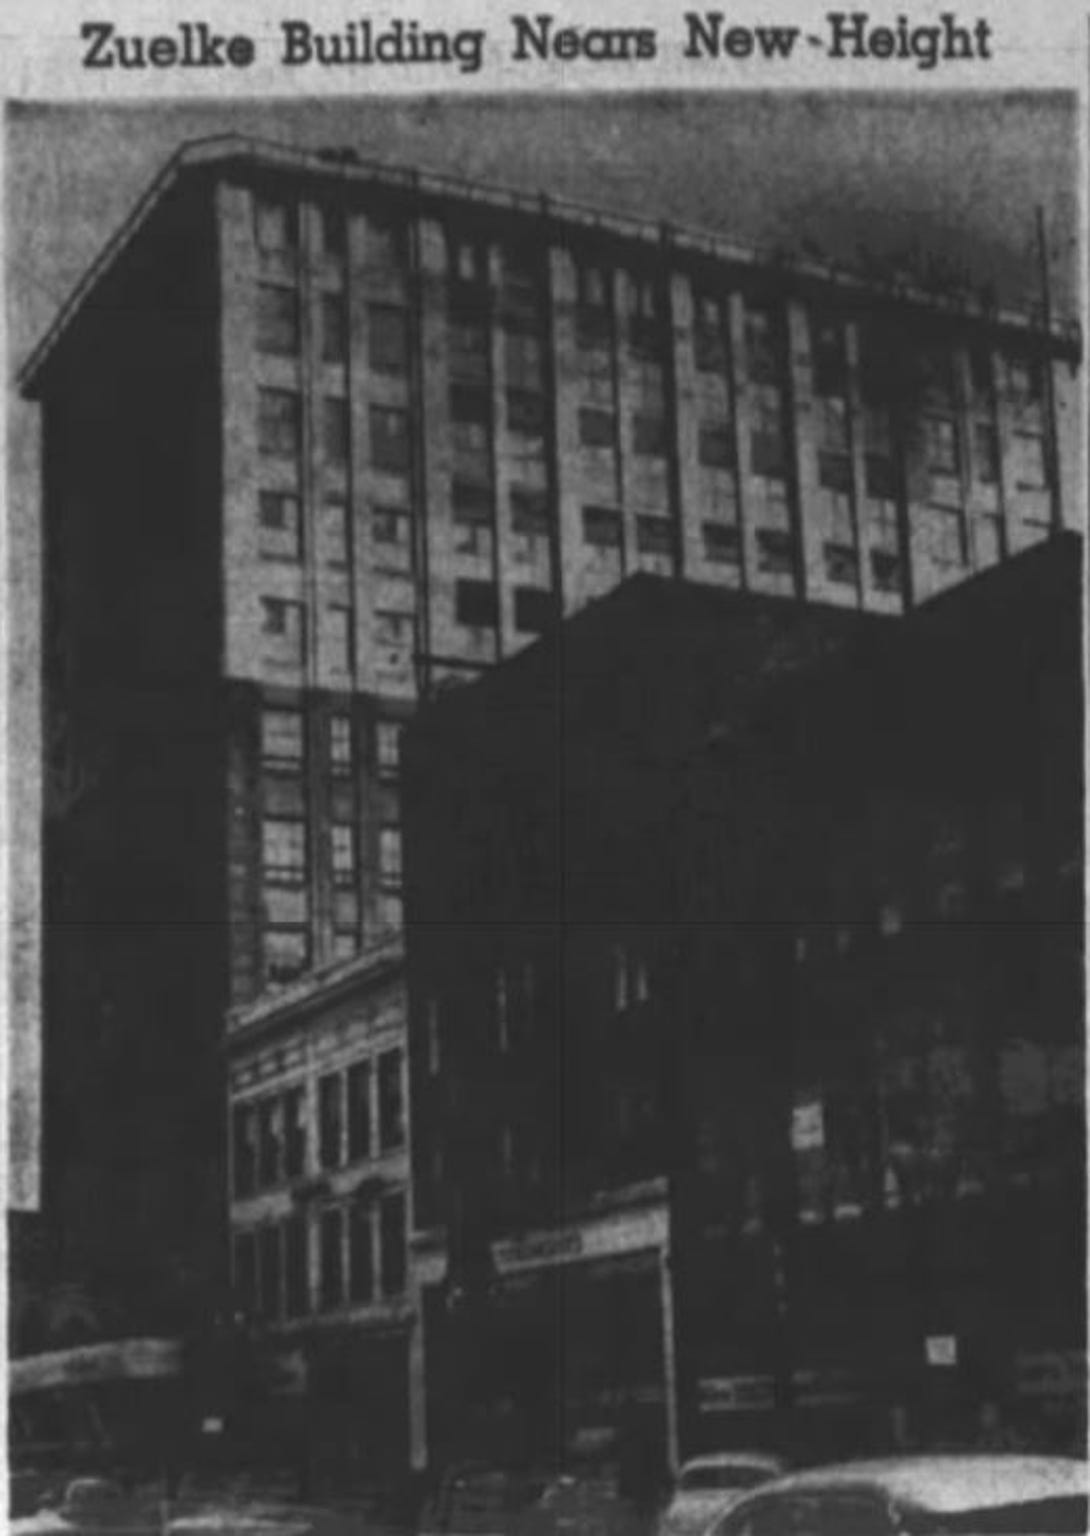 This photo from The Post-Crescent in 1951 shows Zuelke building in downtown Appleton after the construction of five additional floors.